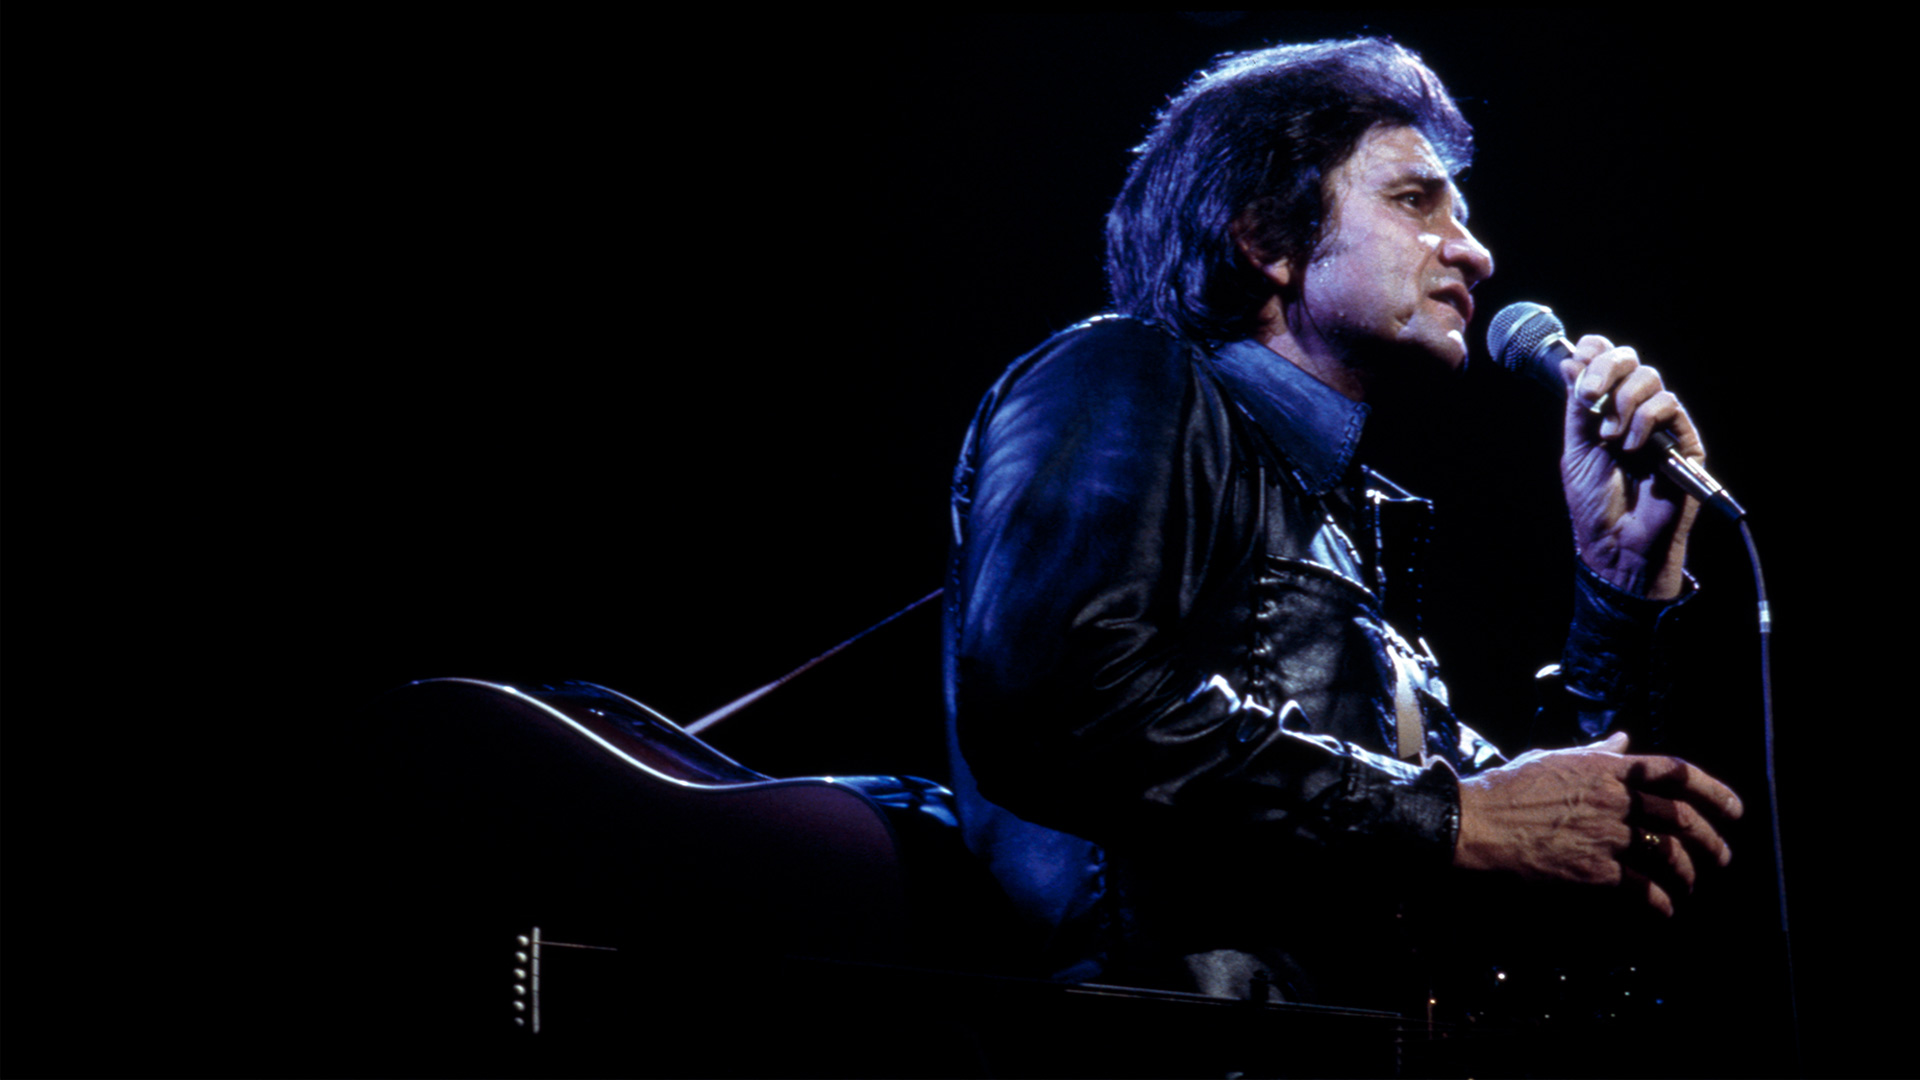 Johnny Cash in a never-before-seen 1973 concert recently found in Sony Music Entertainment's vault.